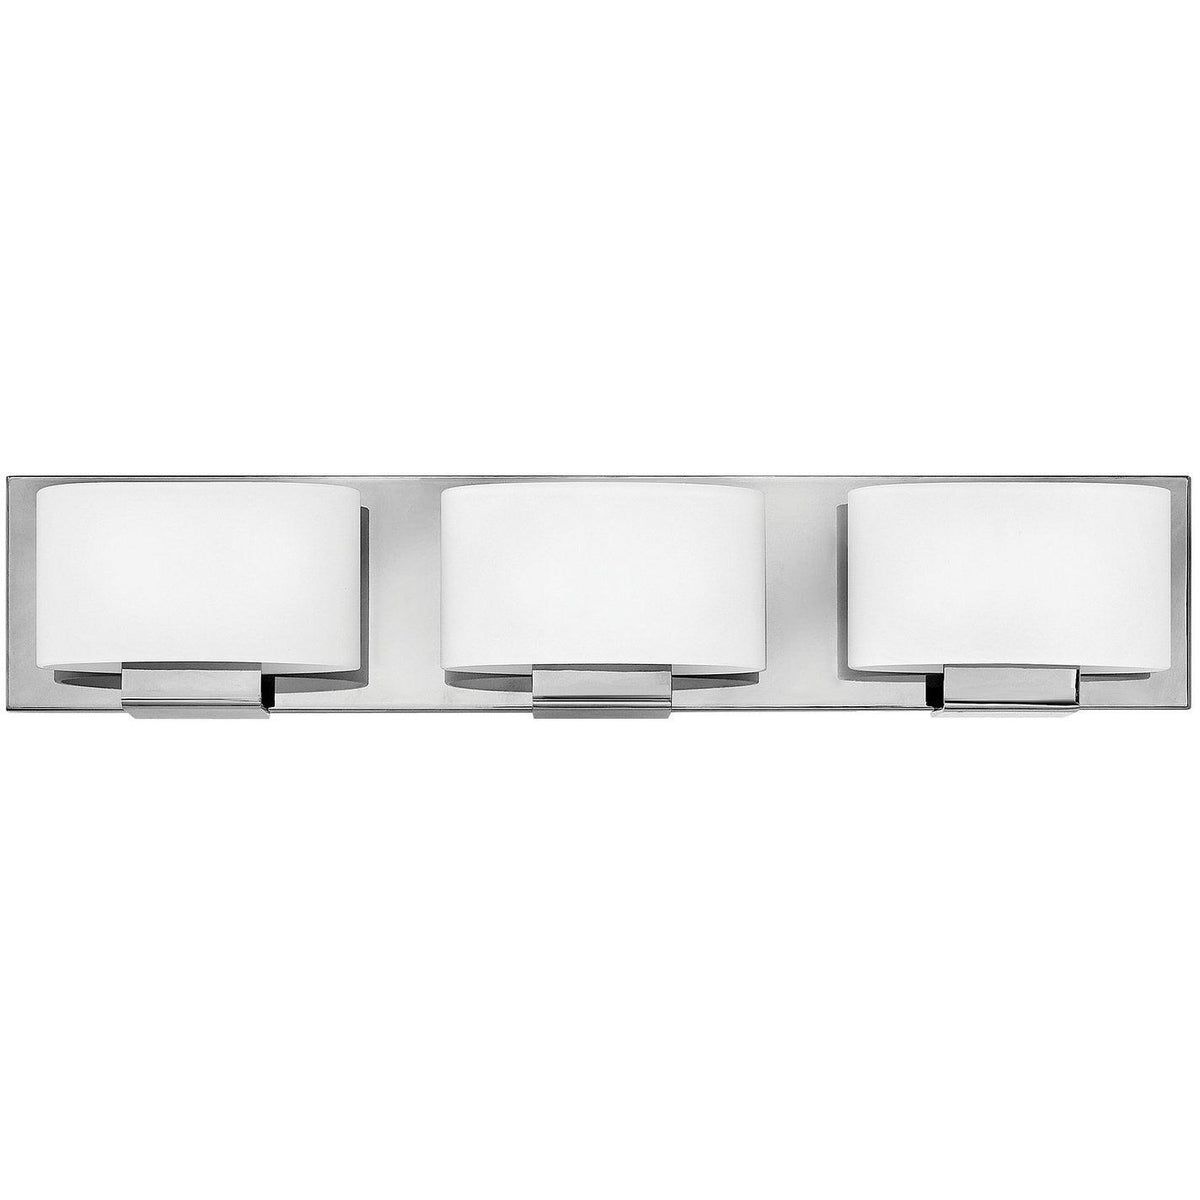 Hinkley Canada - 53553CM - Three Light Bath - Mila - Chrome